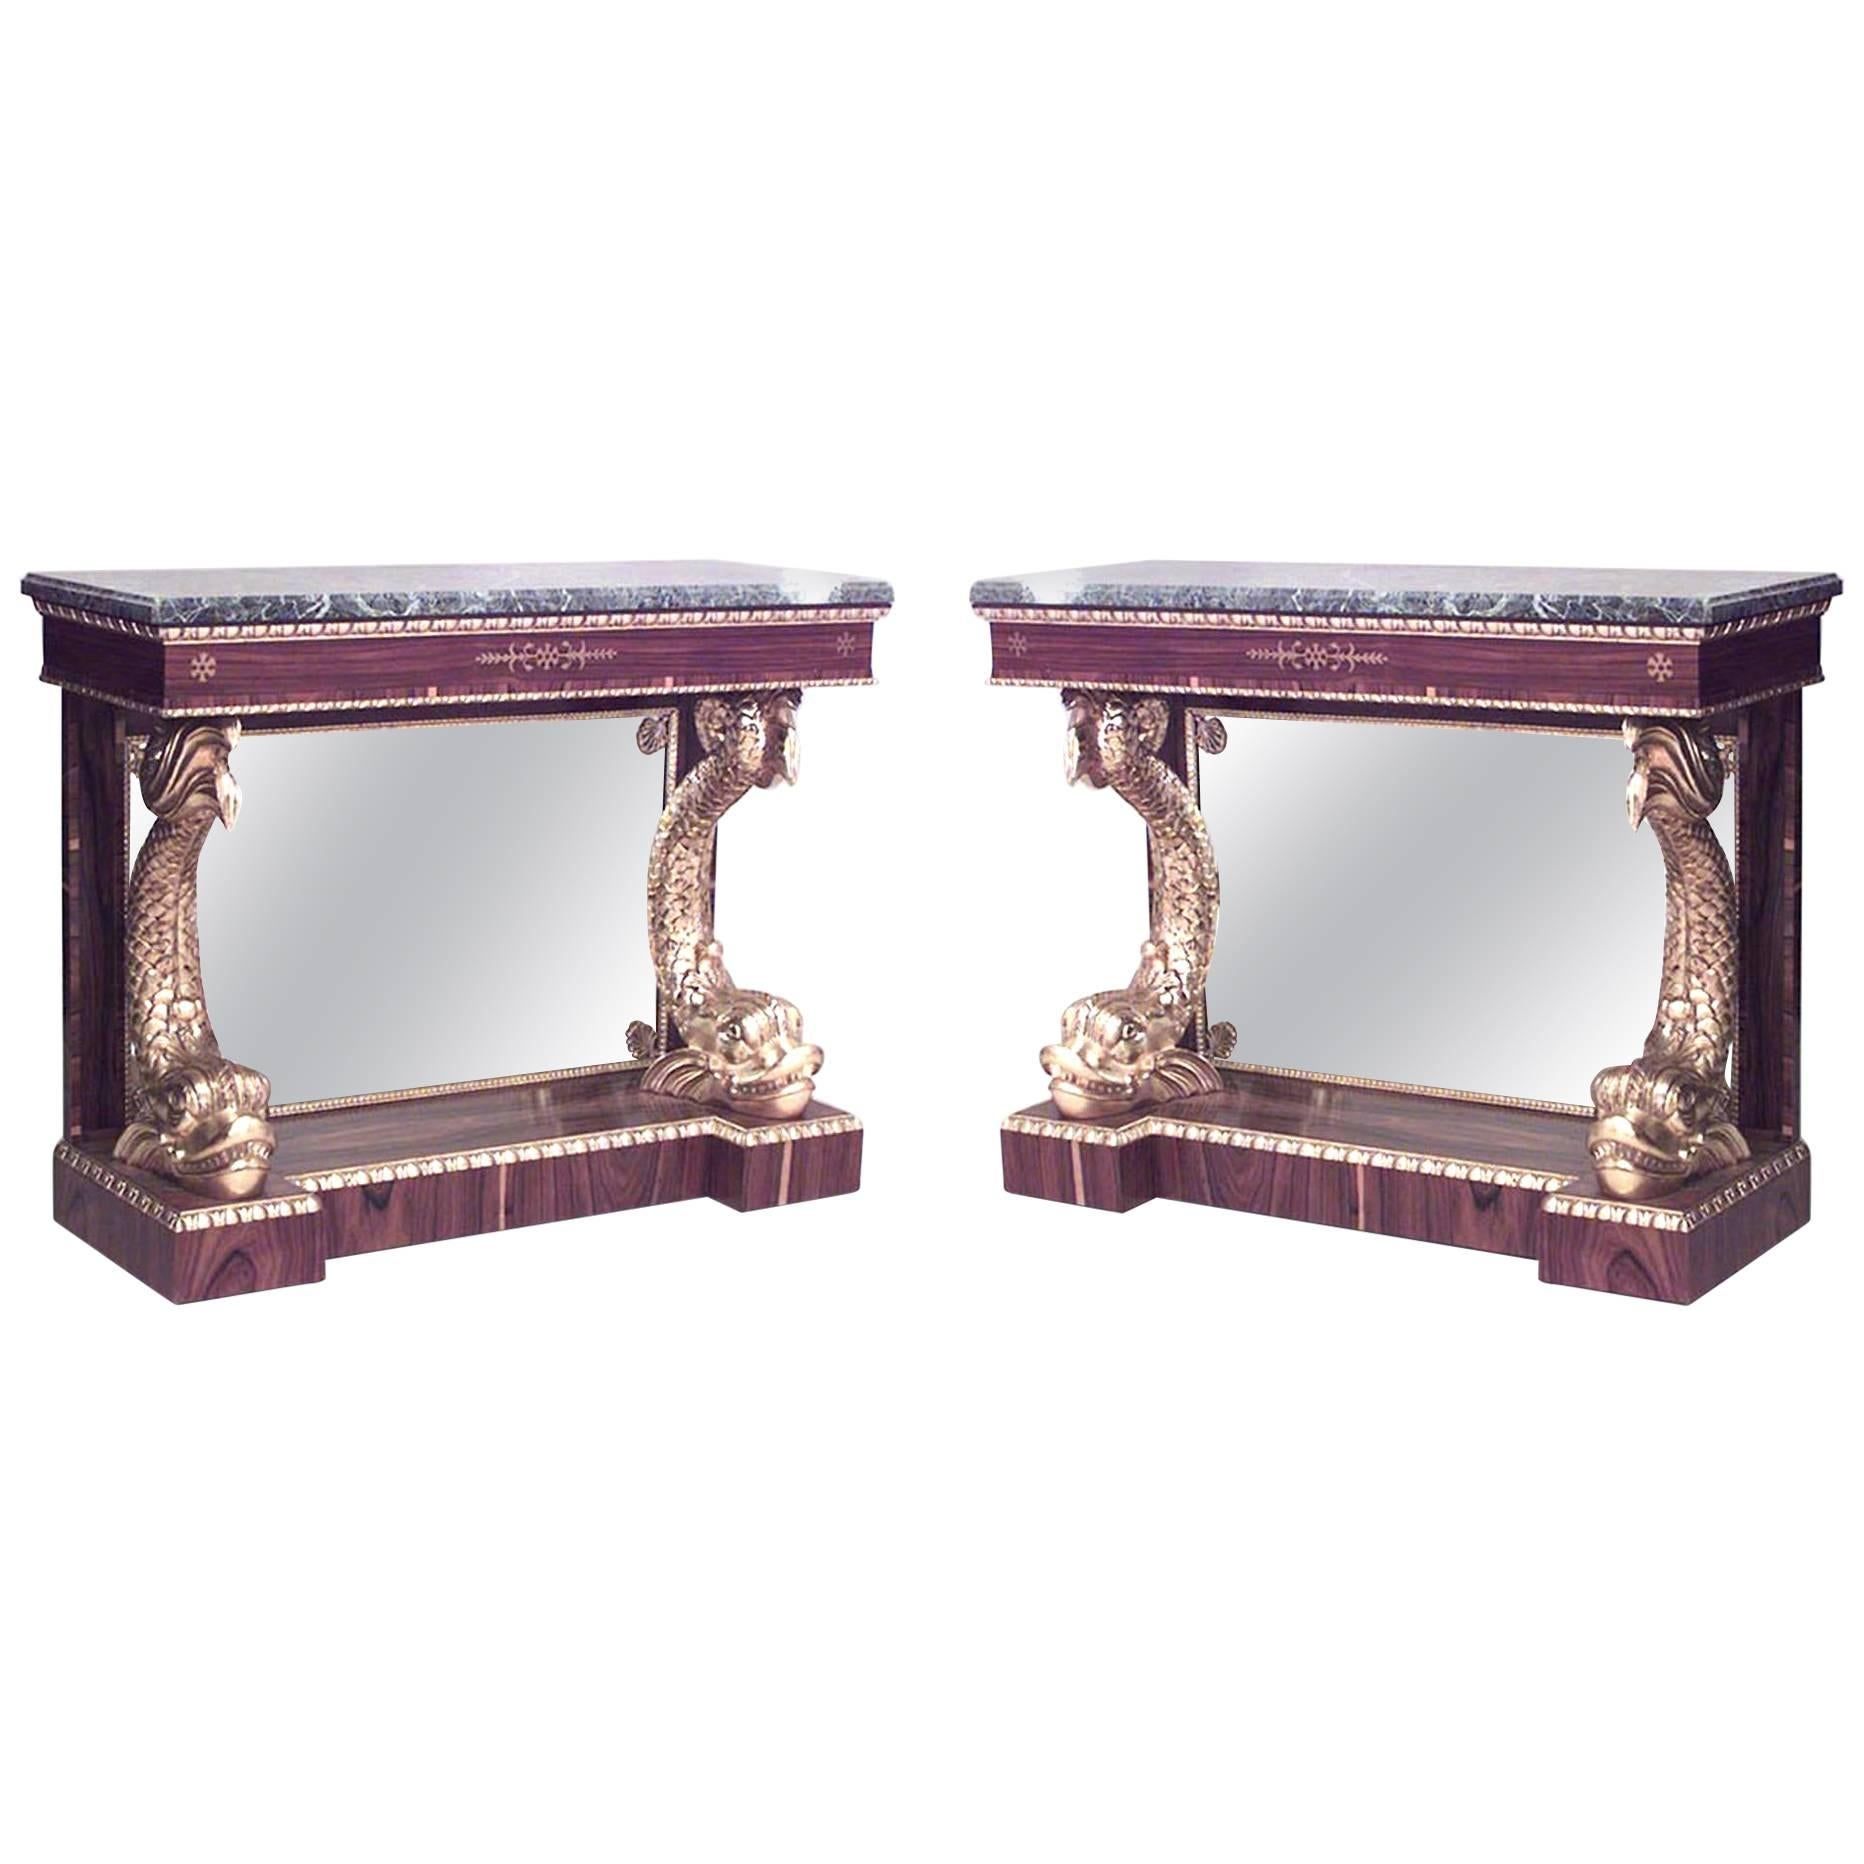 Pair of English Regency Rosewood Gilt Dolphin Console Tables